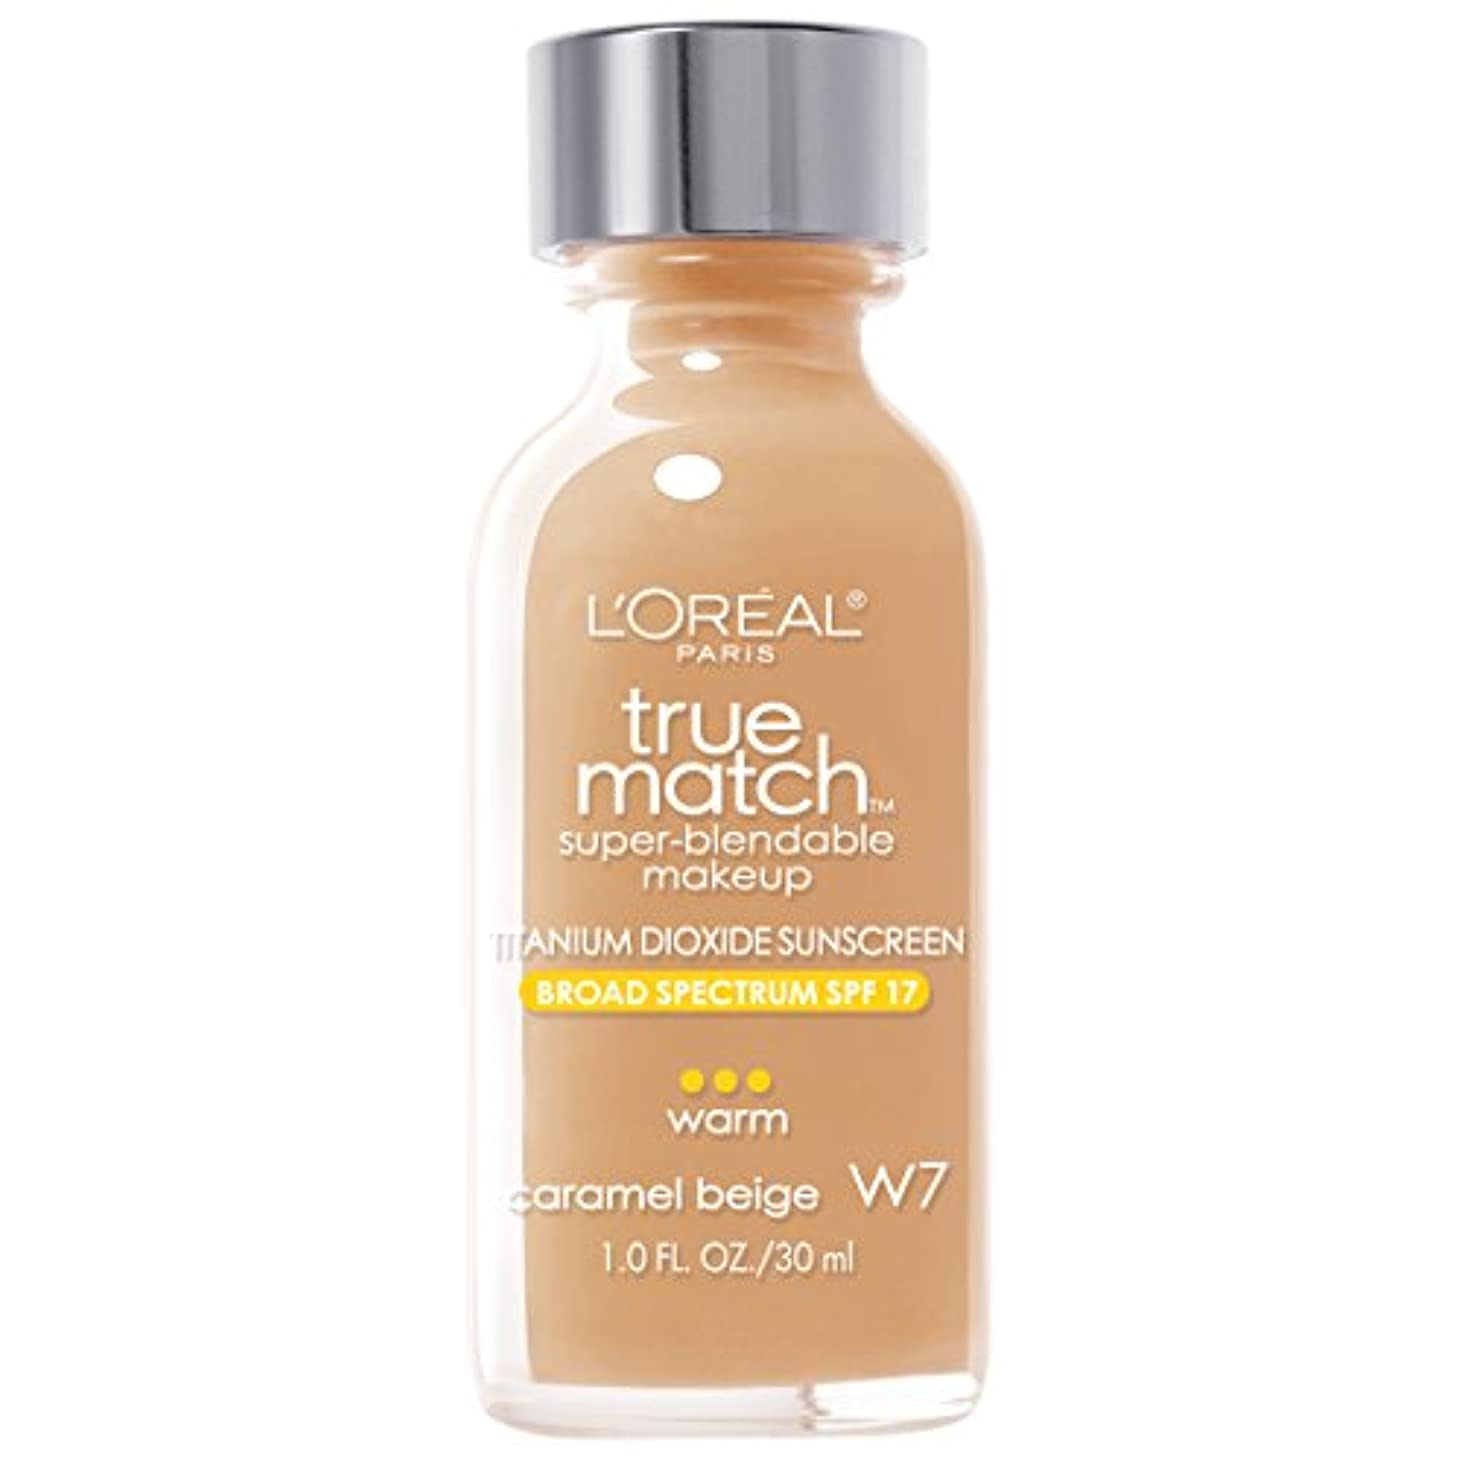 鎮静剤保険をかける包帯L'Oréal True Match Super-Blendable Foundation Makeup (CARAMEL BEIGE)